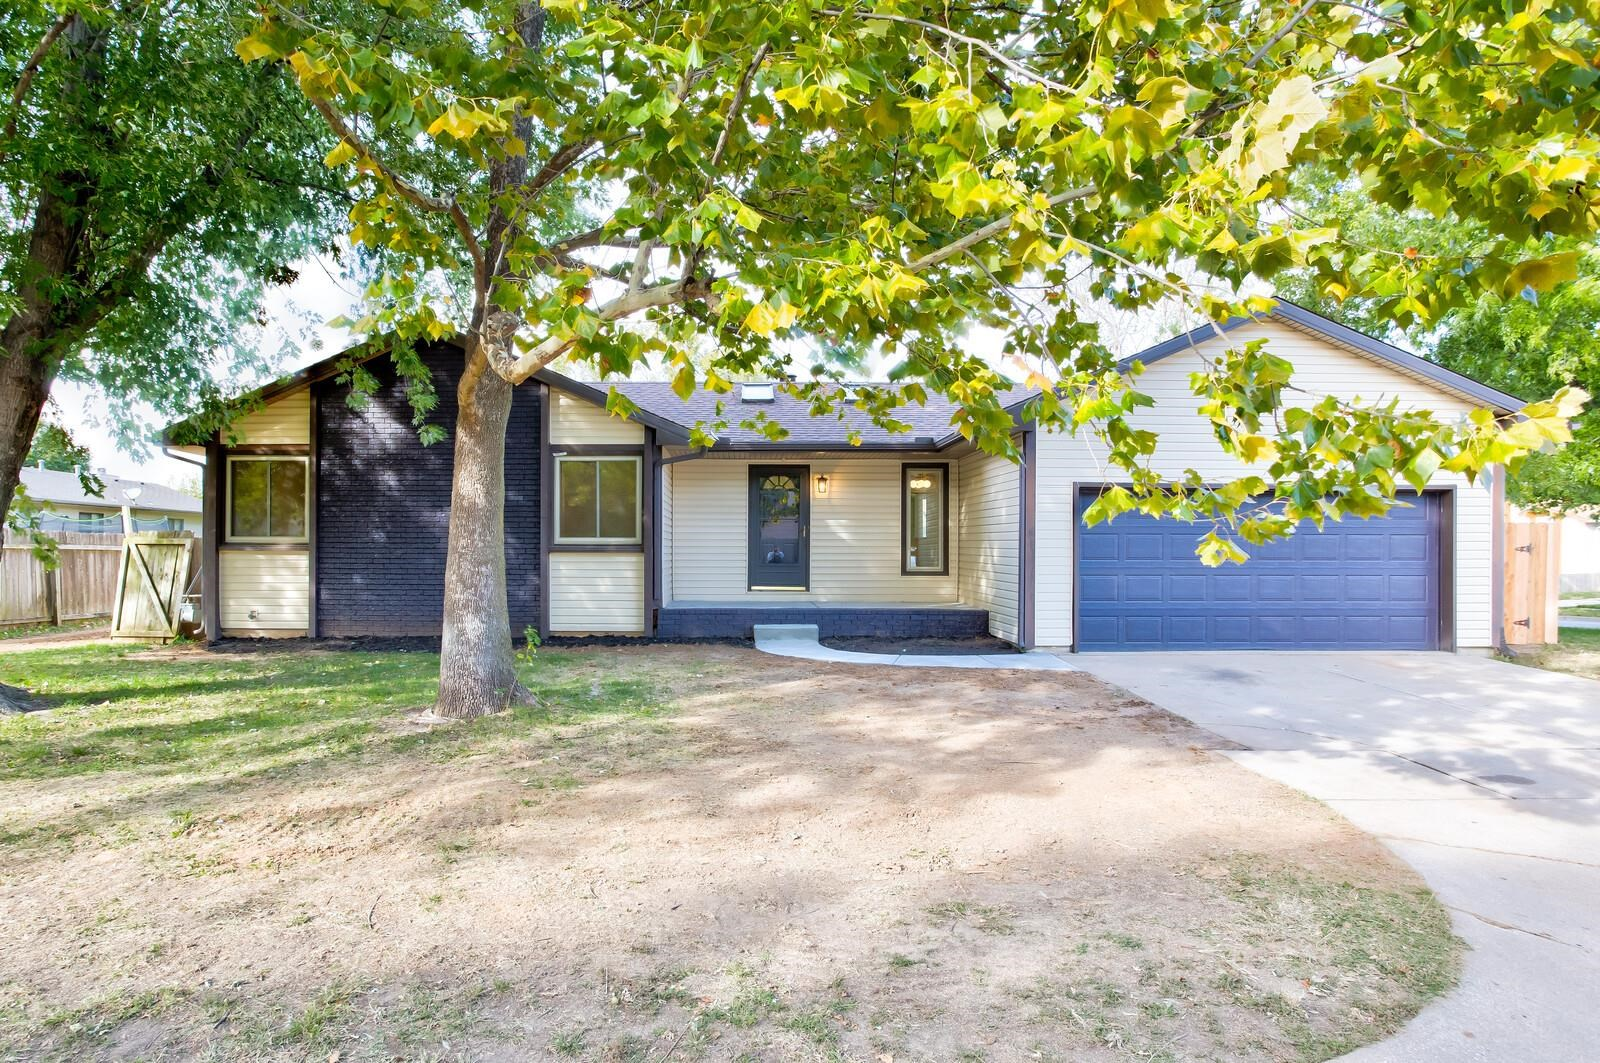 Beautifully updated 4 bedroom, 3 bathroom home with 2-car attached garage in beautiful established S